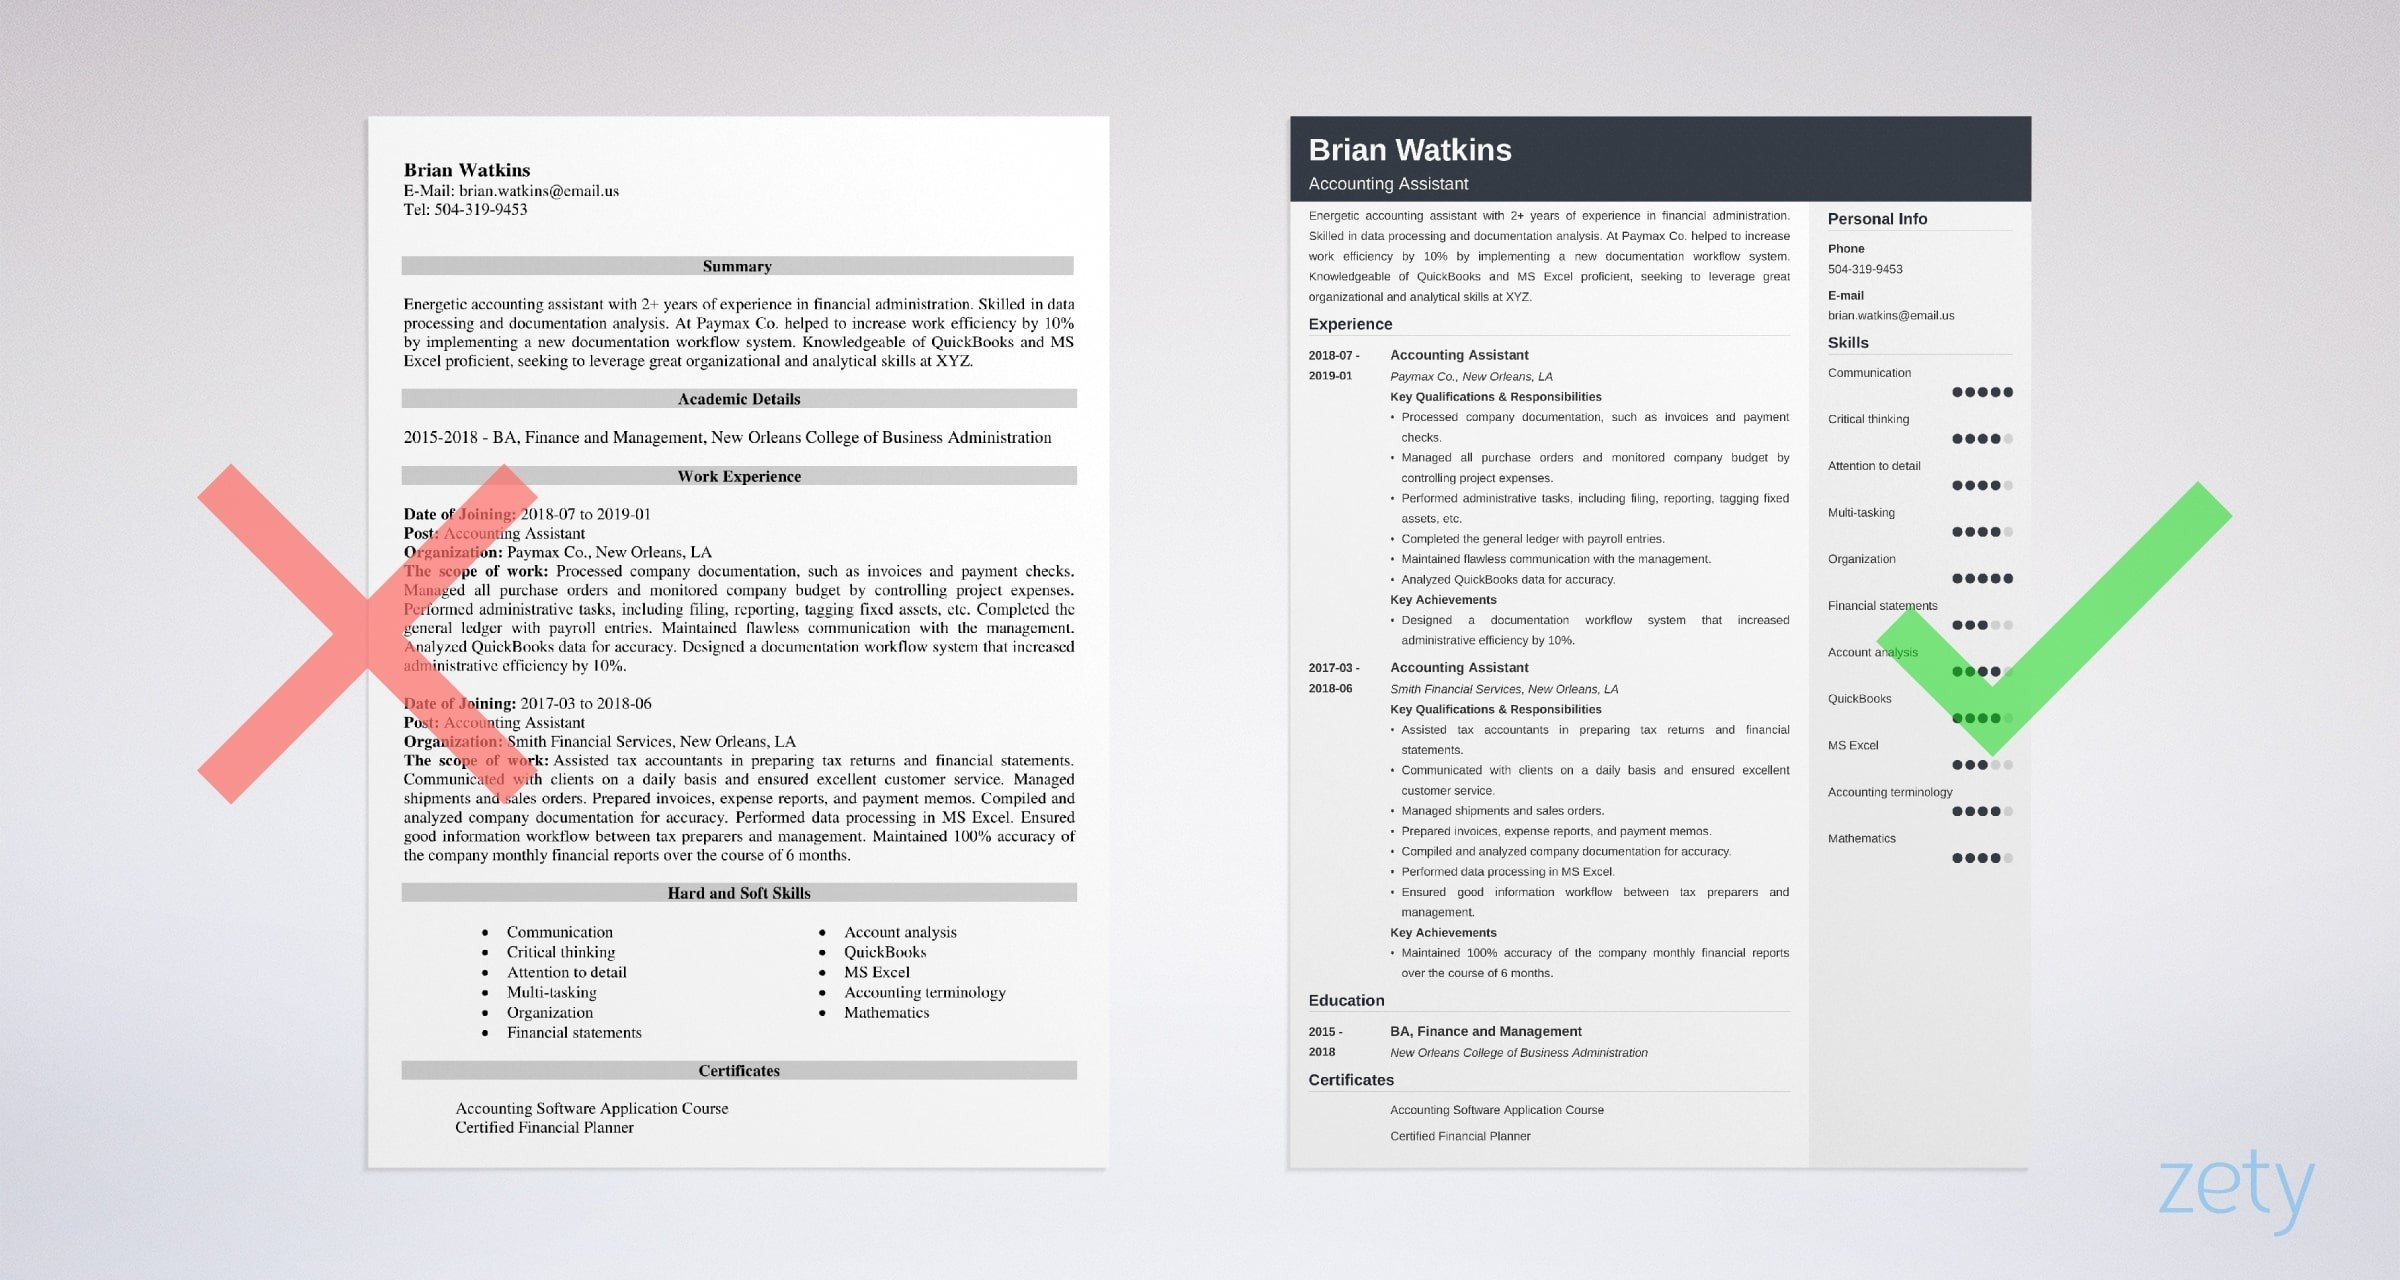 accounting assistant resume sample writing guide tips for account indian format example Resume Resume For Account Assistant Indian Format